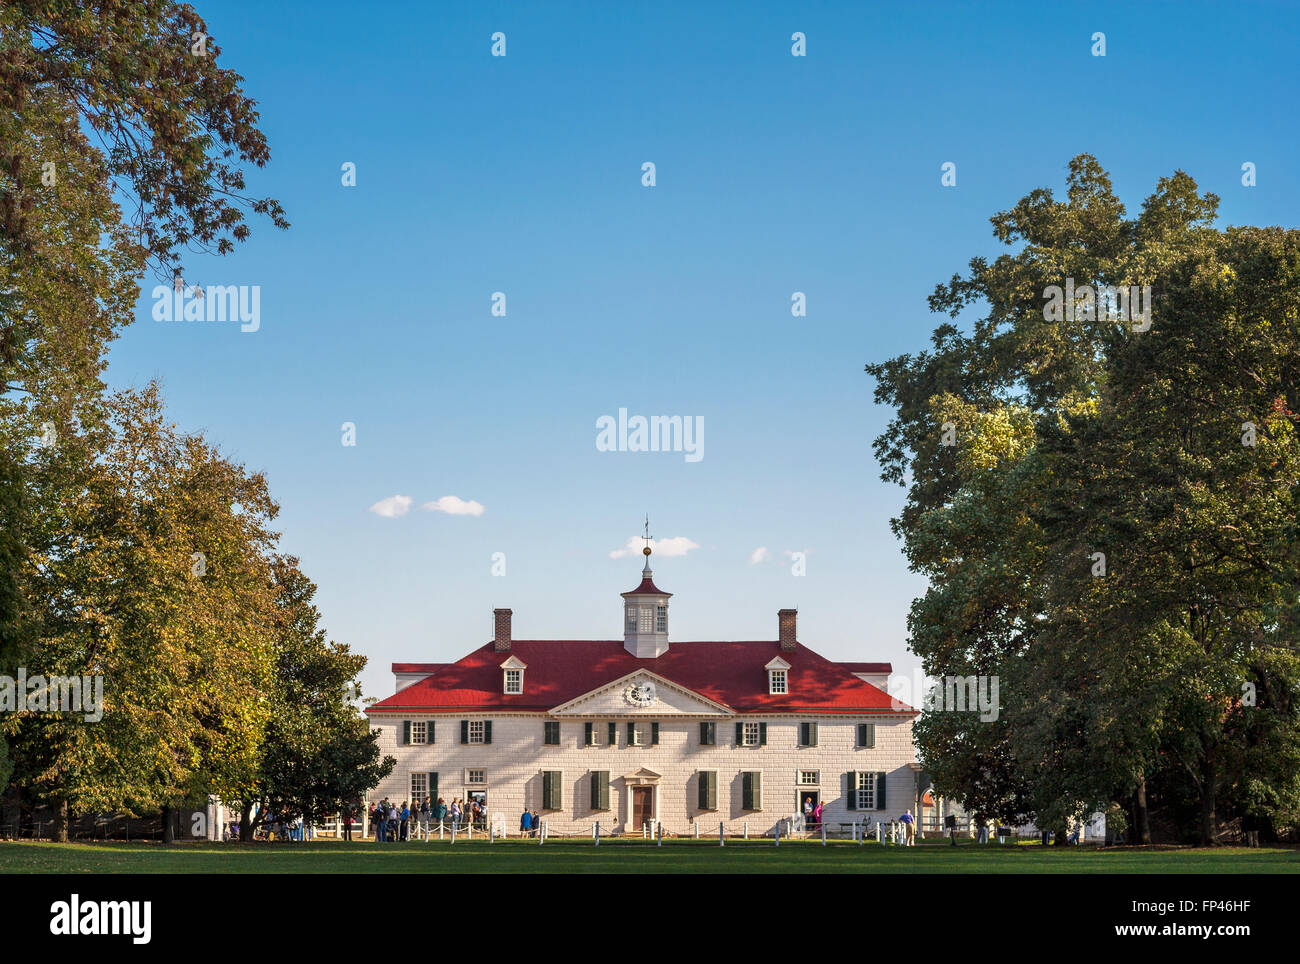 Mount Vernon plantation home estate mansion di George e Martha Washington. Nei pressi di Alexandria in Virginia Immagini Stock